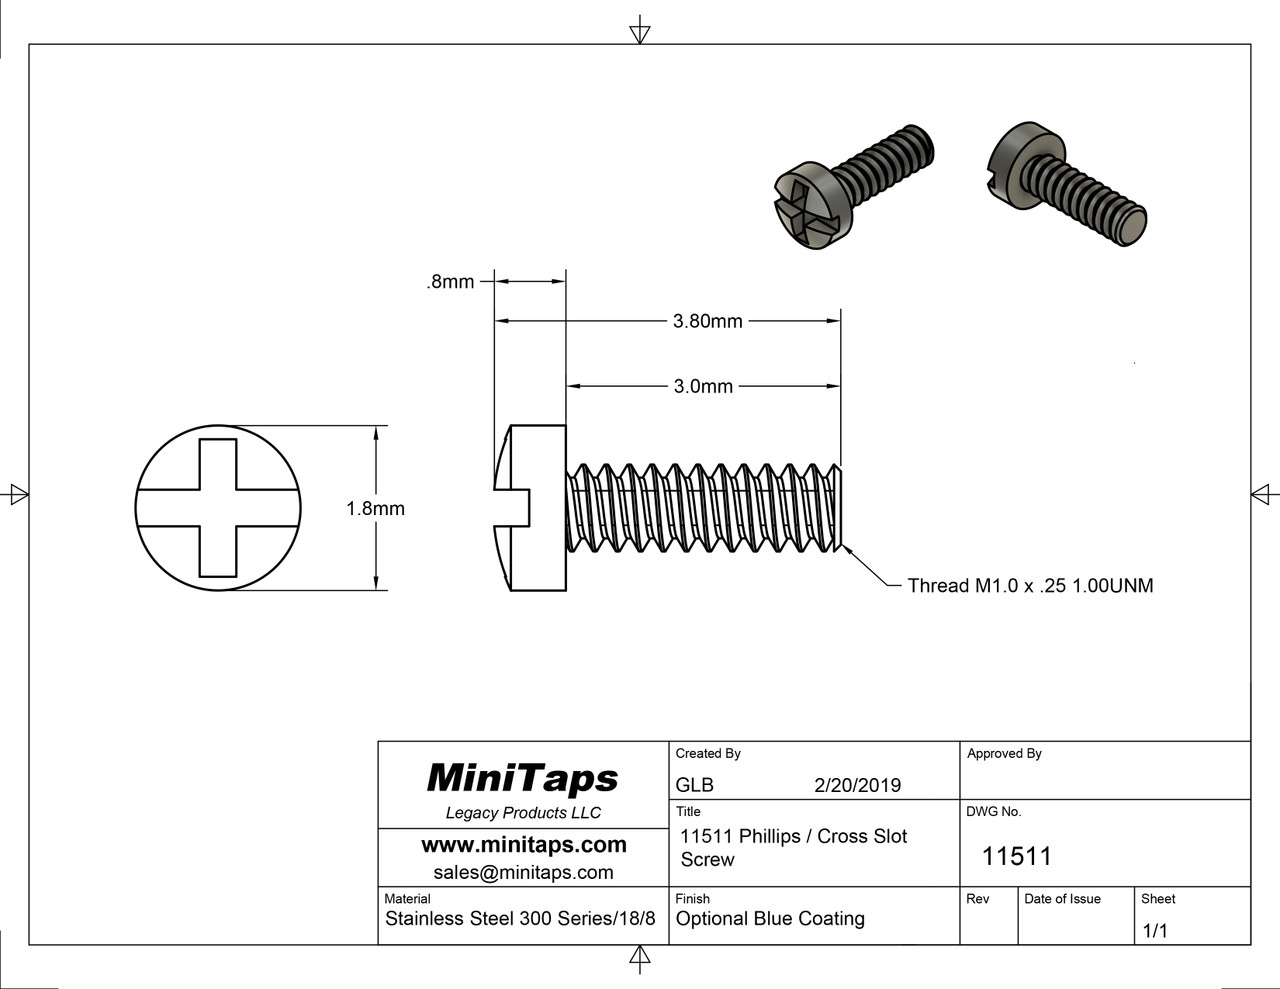 Thread M1. pitch .25mm  Length 3.0mm, Machine Screw Pan Head Slotted with Philips (cross-recess) drive overall length 3.8mm stainless steel  100 count package.